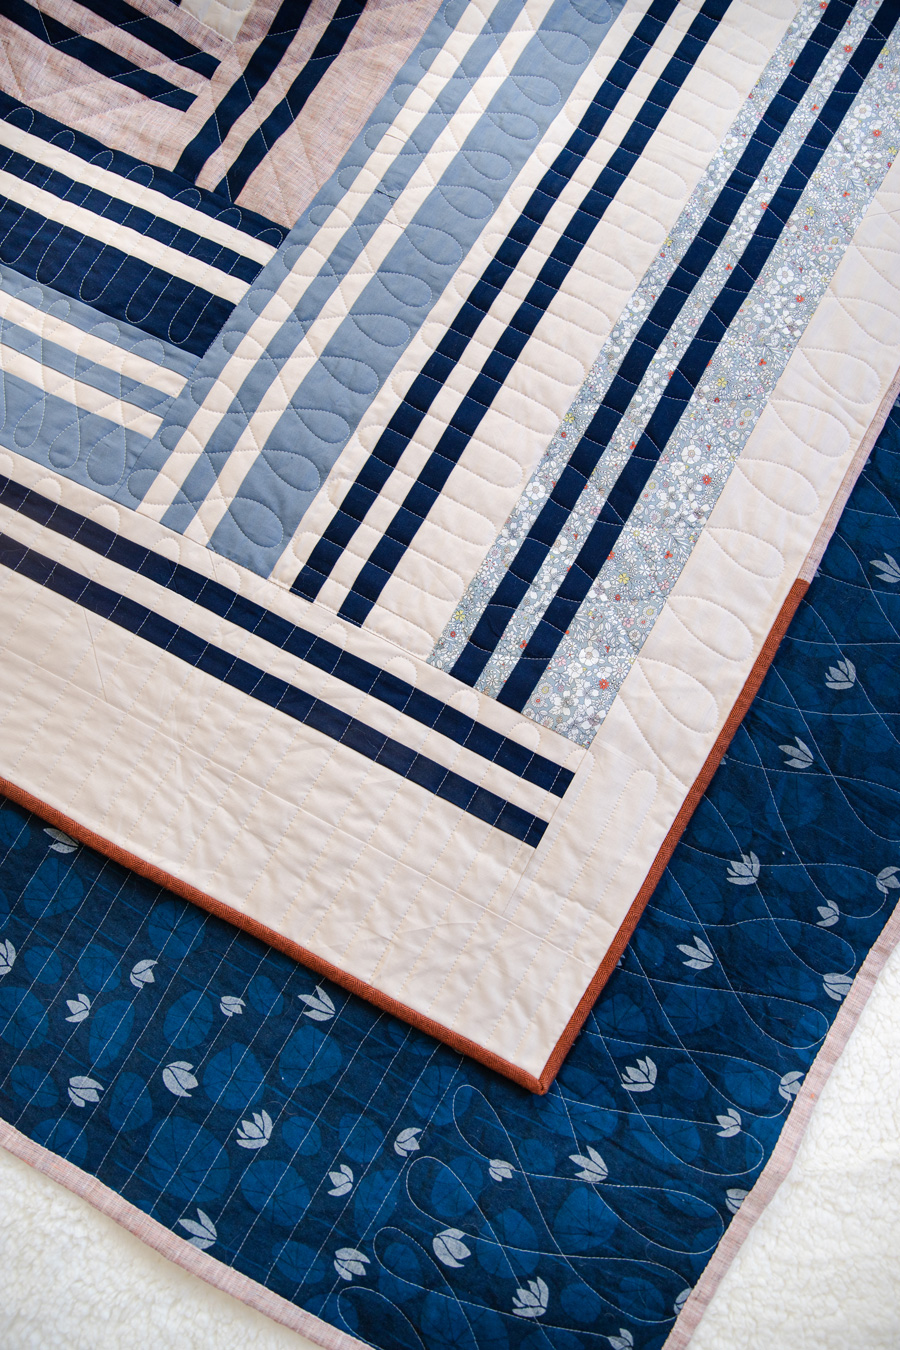 The Grow quilt pattern focuses on strip piecing – a simple quilting technique that creates a beautiful modern design. See lots of beautiful quilt examples! suzyquilts.com #quiltpattern